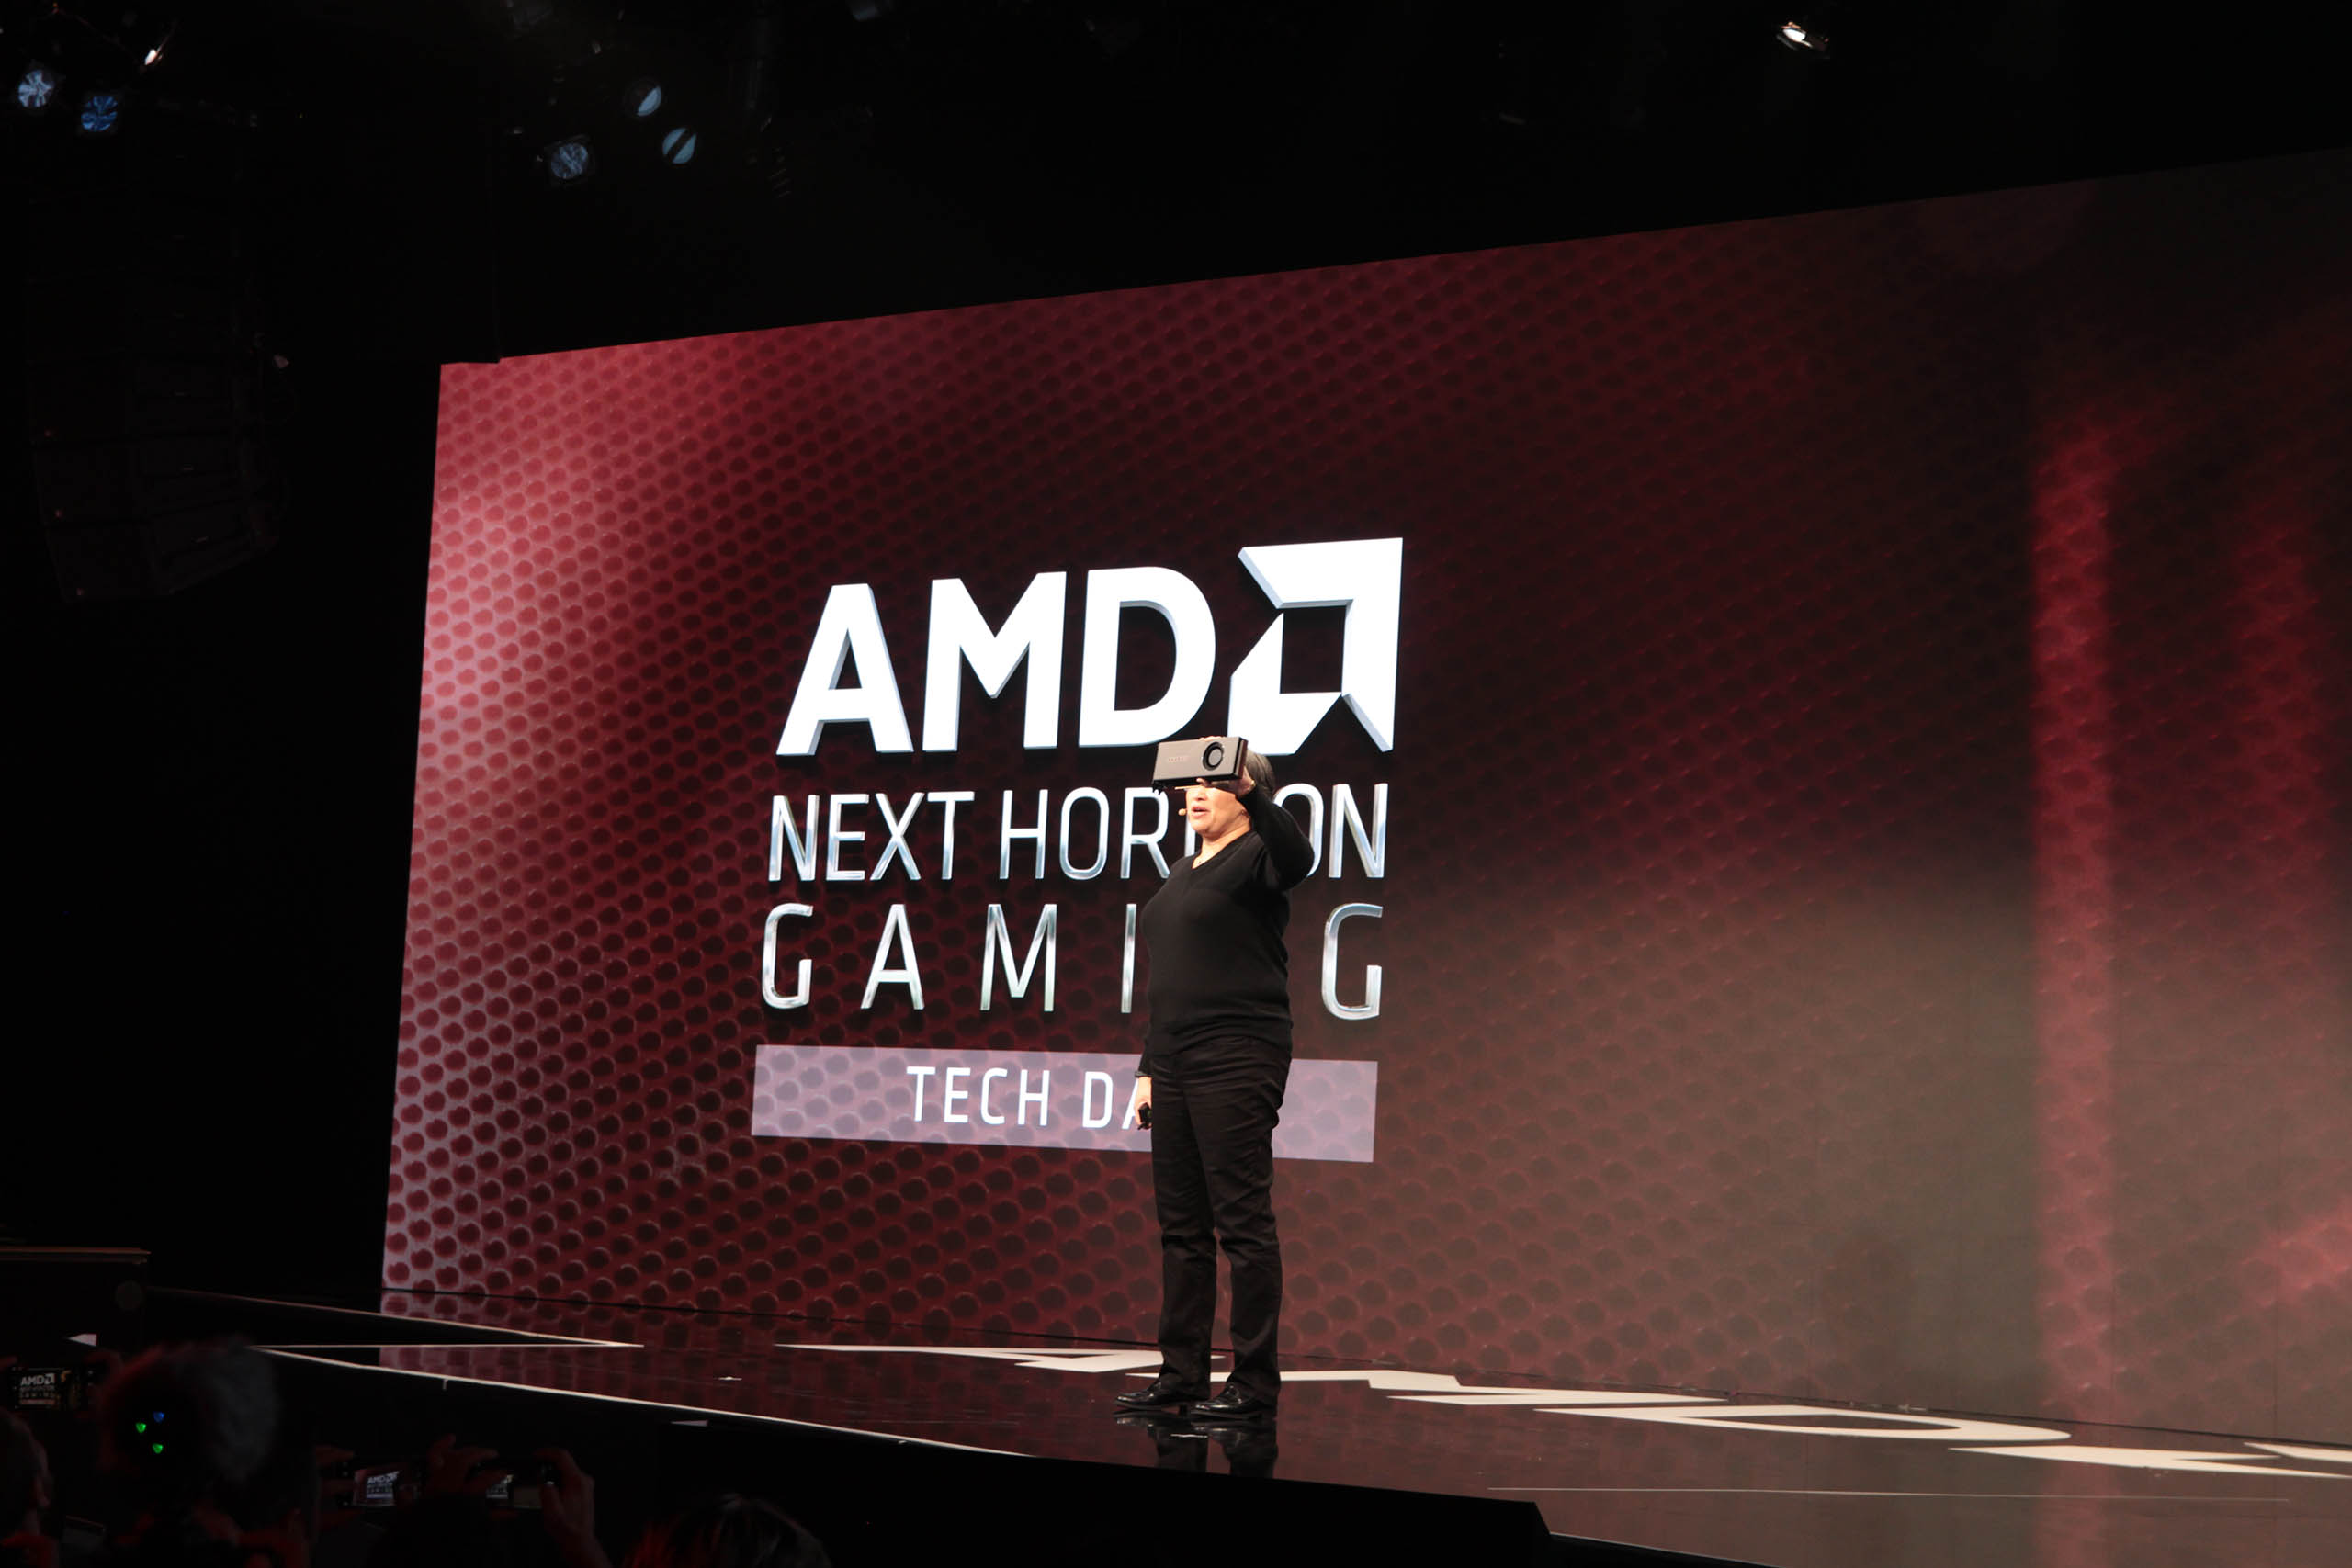 AMD Next Horizon Gaming Los Angeles